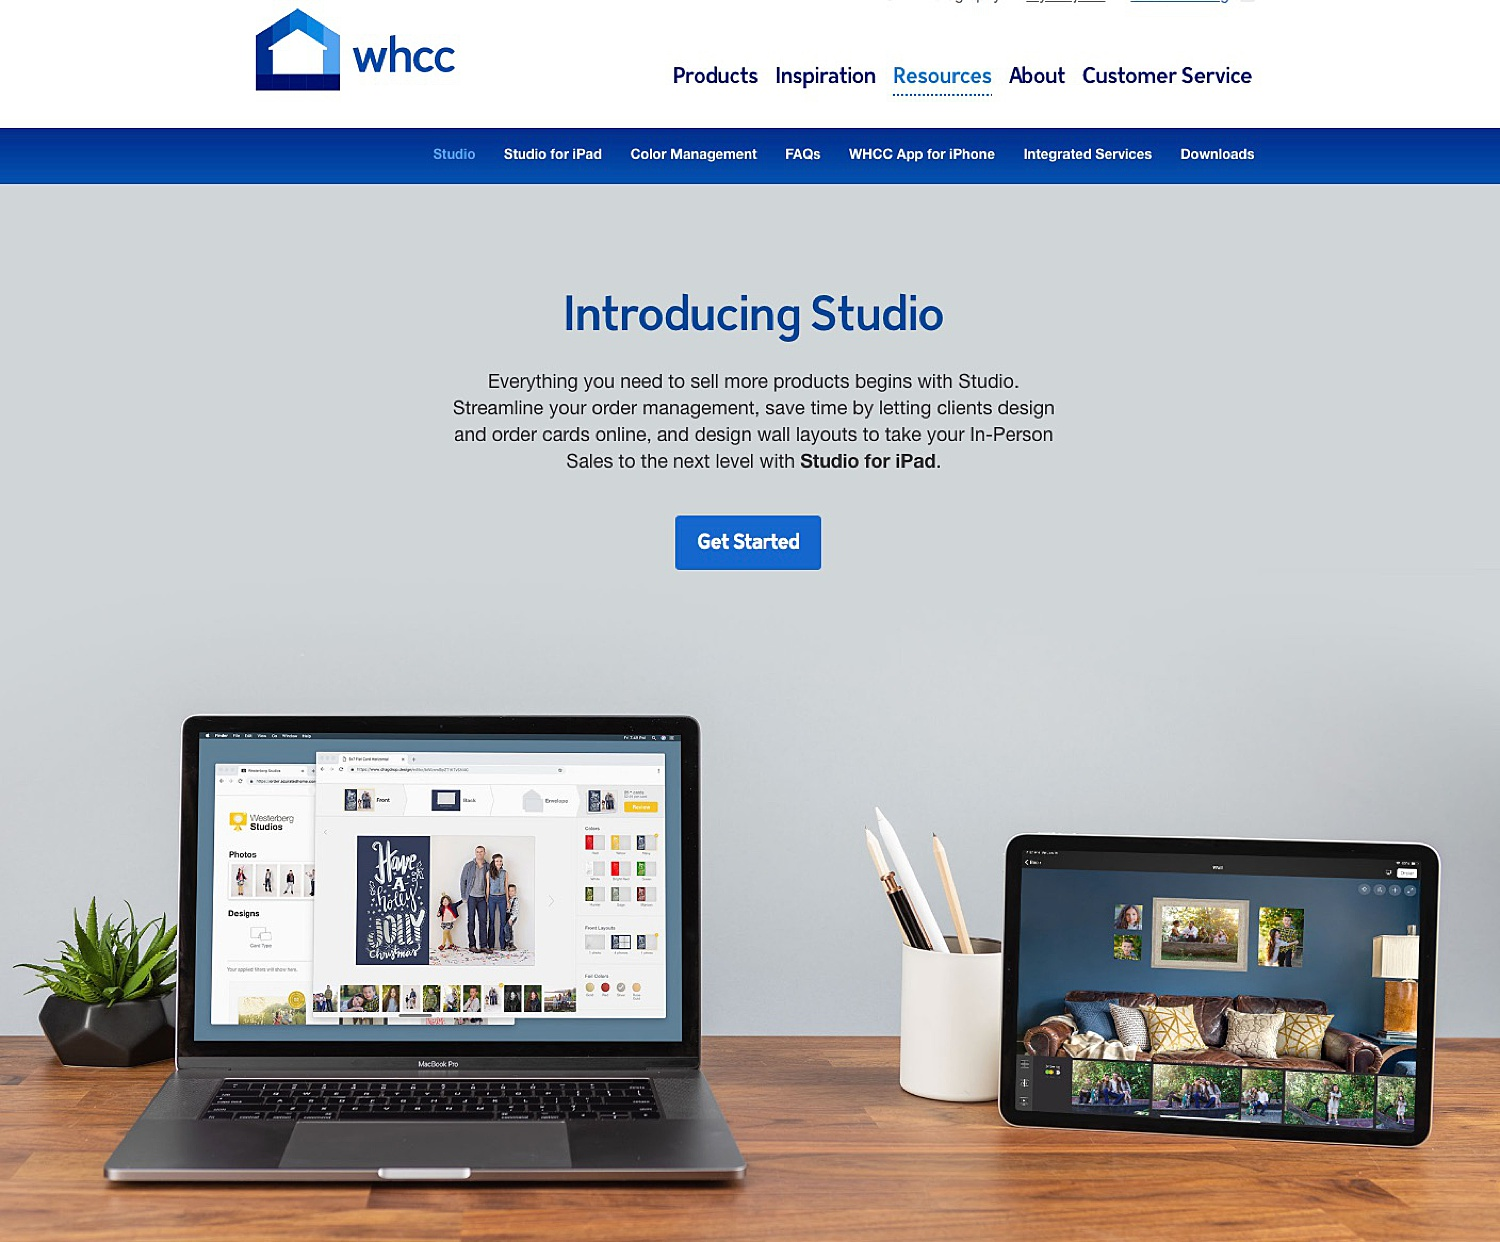 Image: WHCC offers a program you can use on your iPad called Studio to create mockups of products yo...